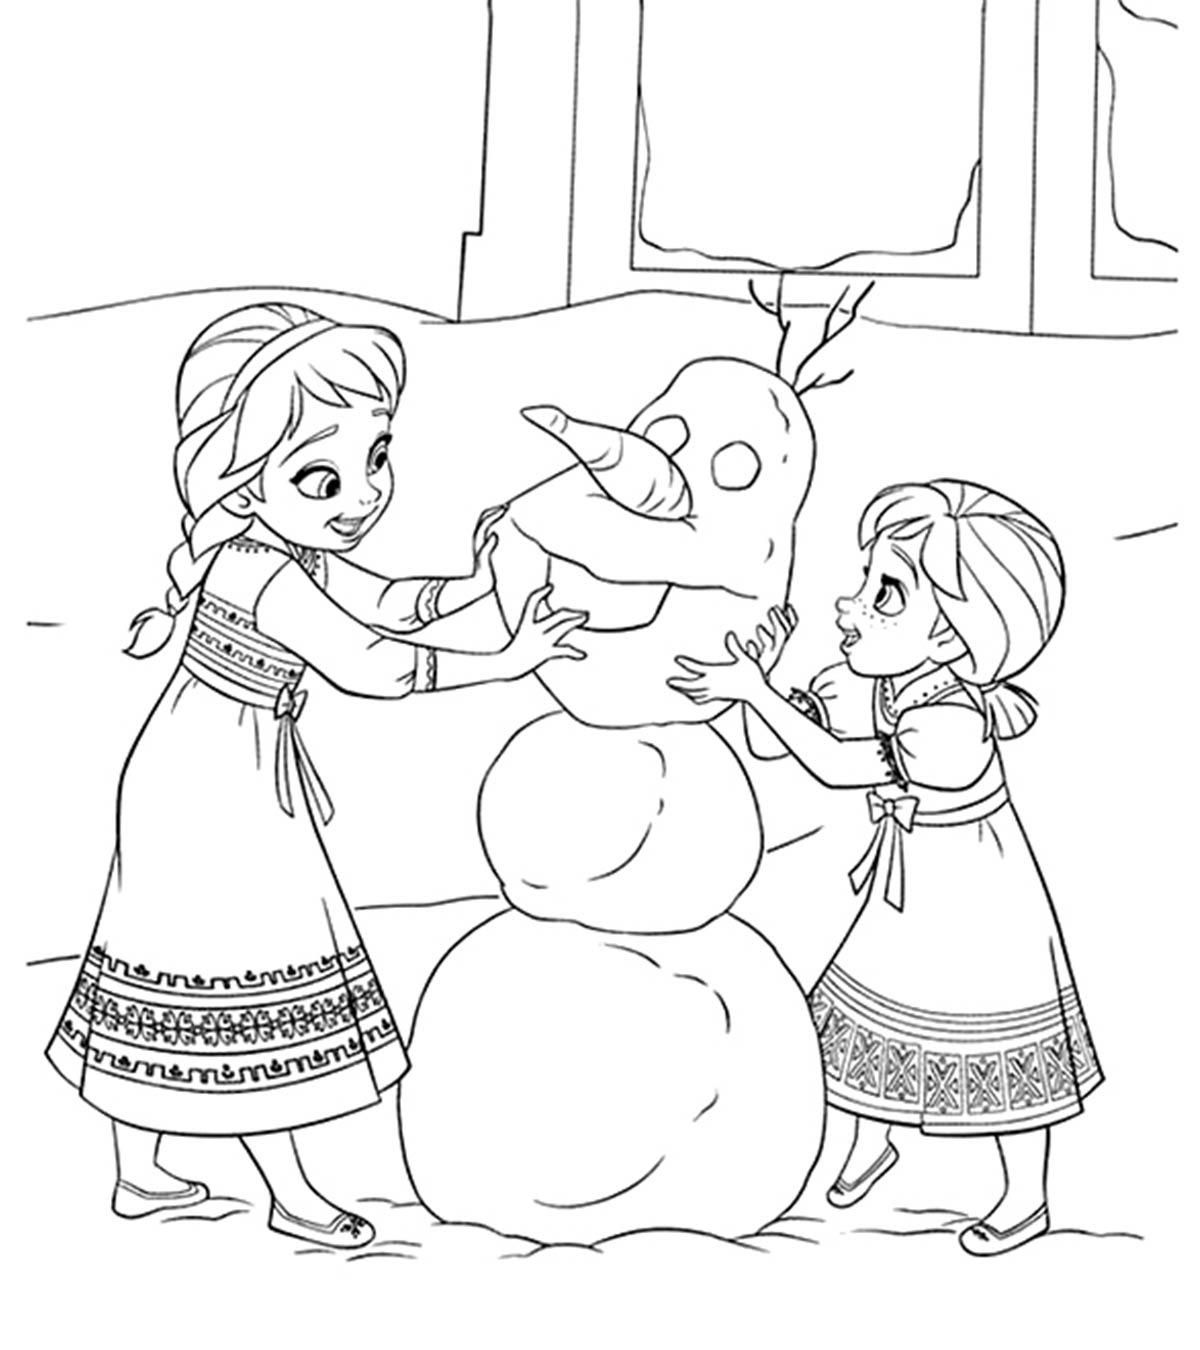 Awesome Coloring Pages Princess Elsa That You Must Know You Re In